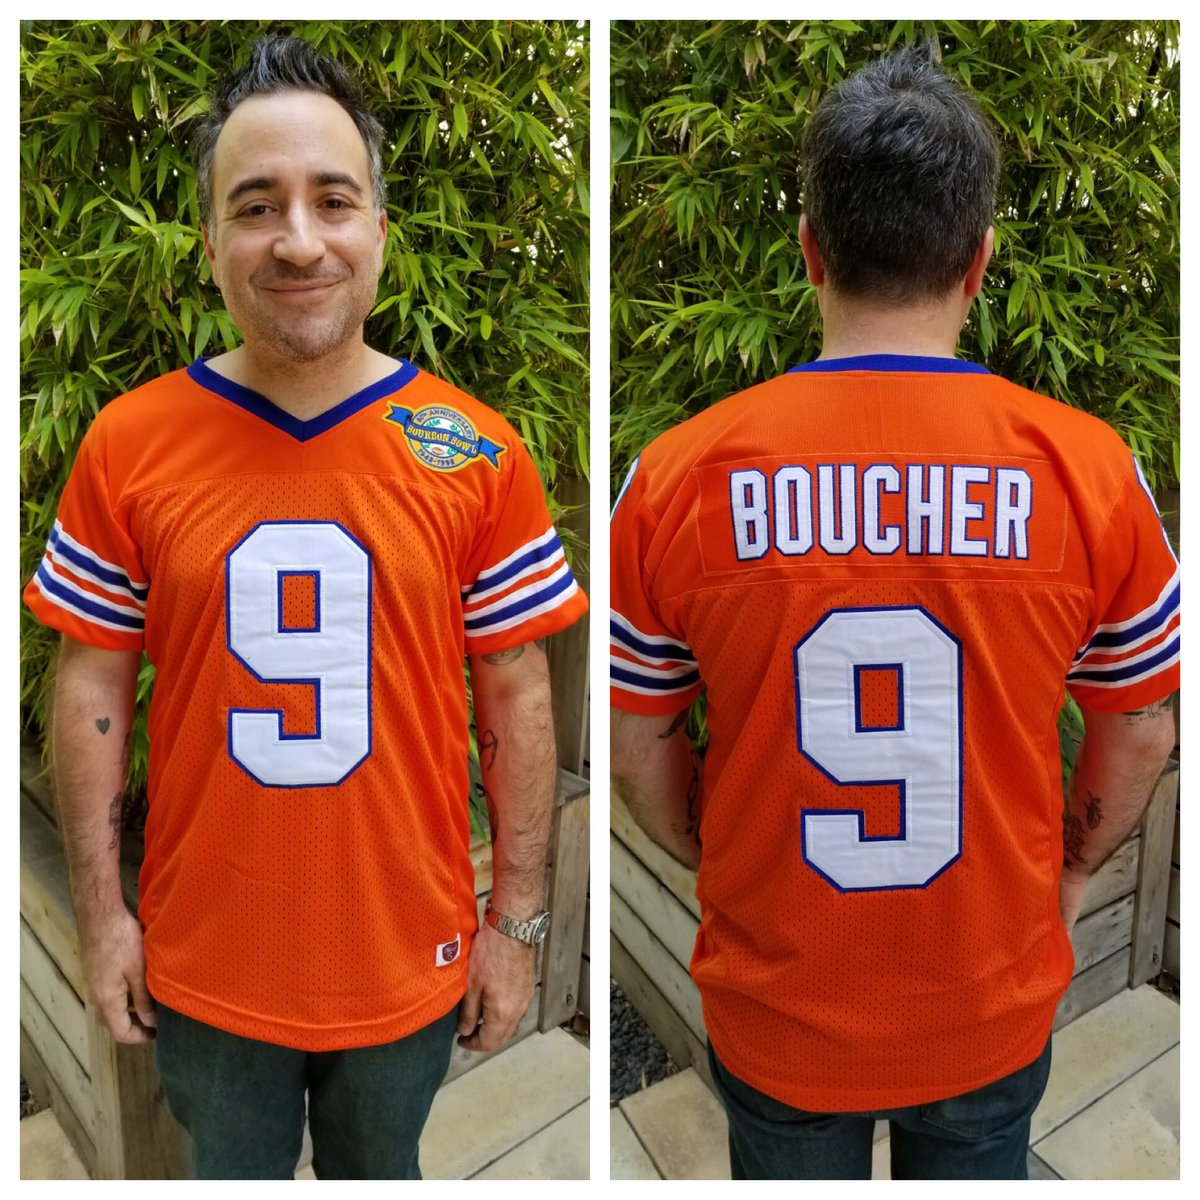 its day 2 of people and so ill go with the bourbon bowl official bobby  boucher a0a6baec2022